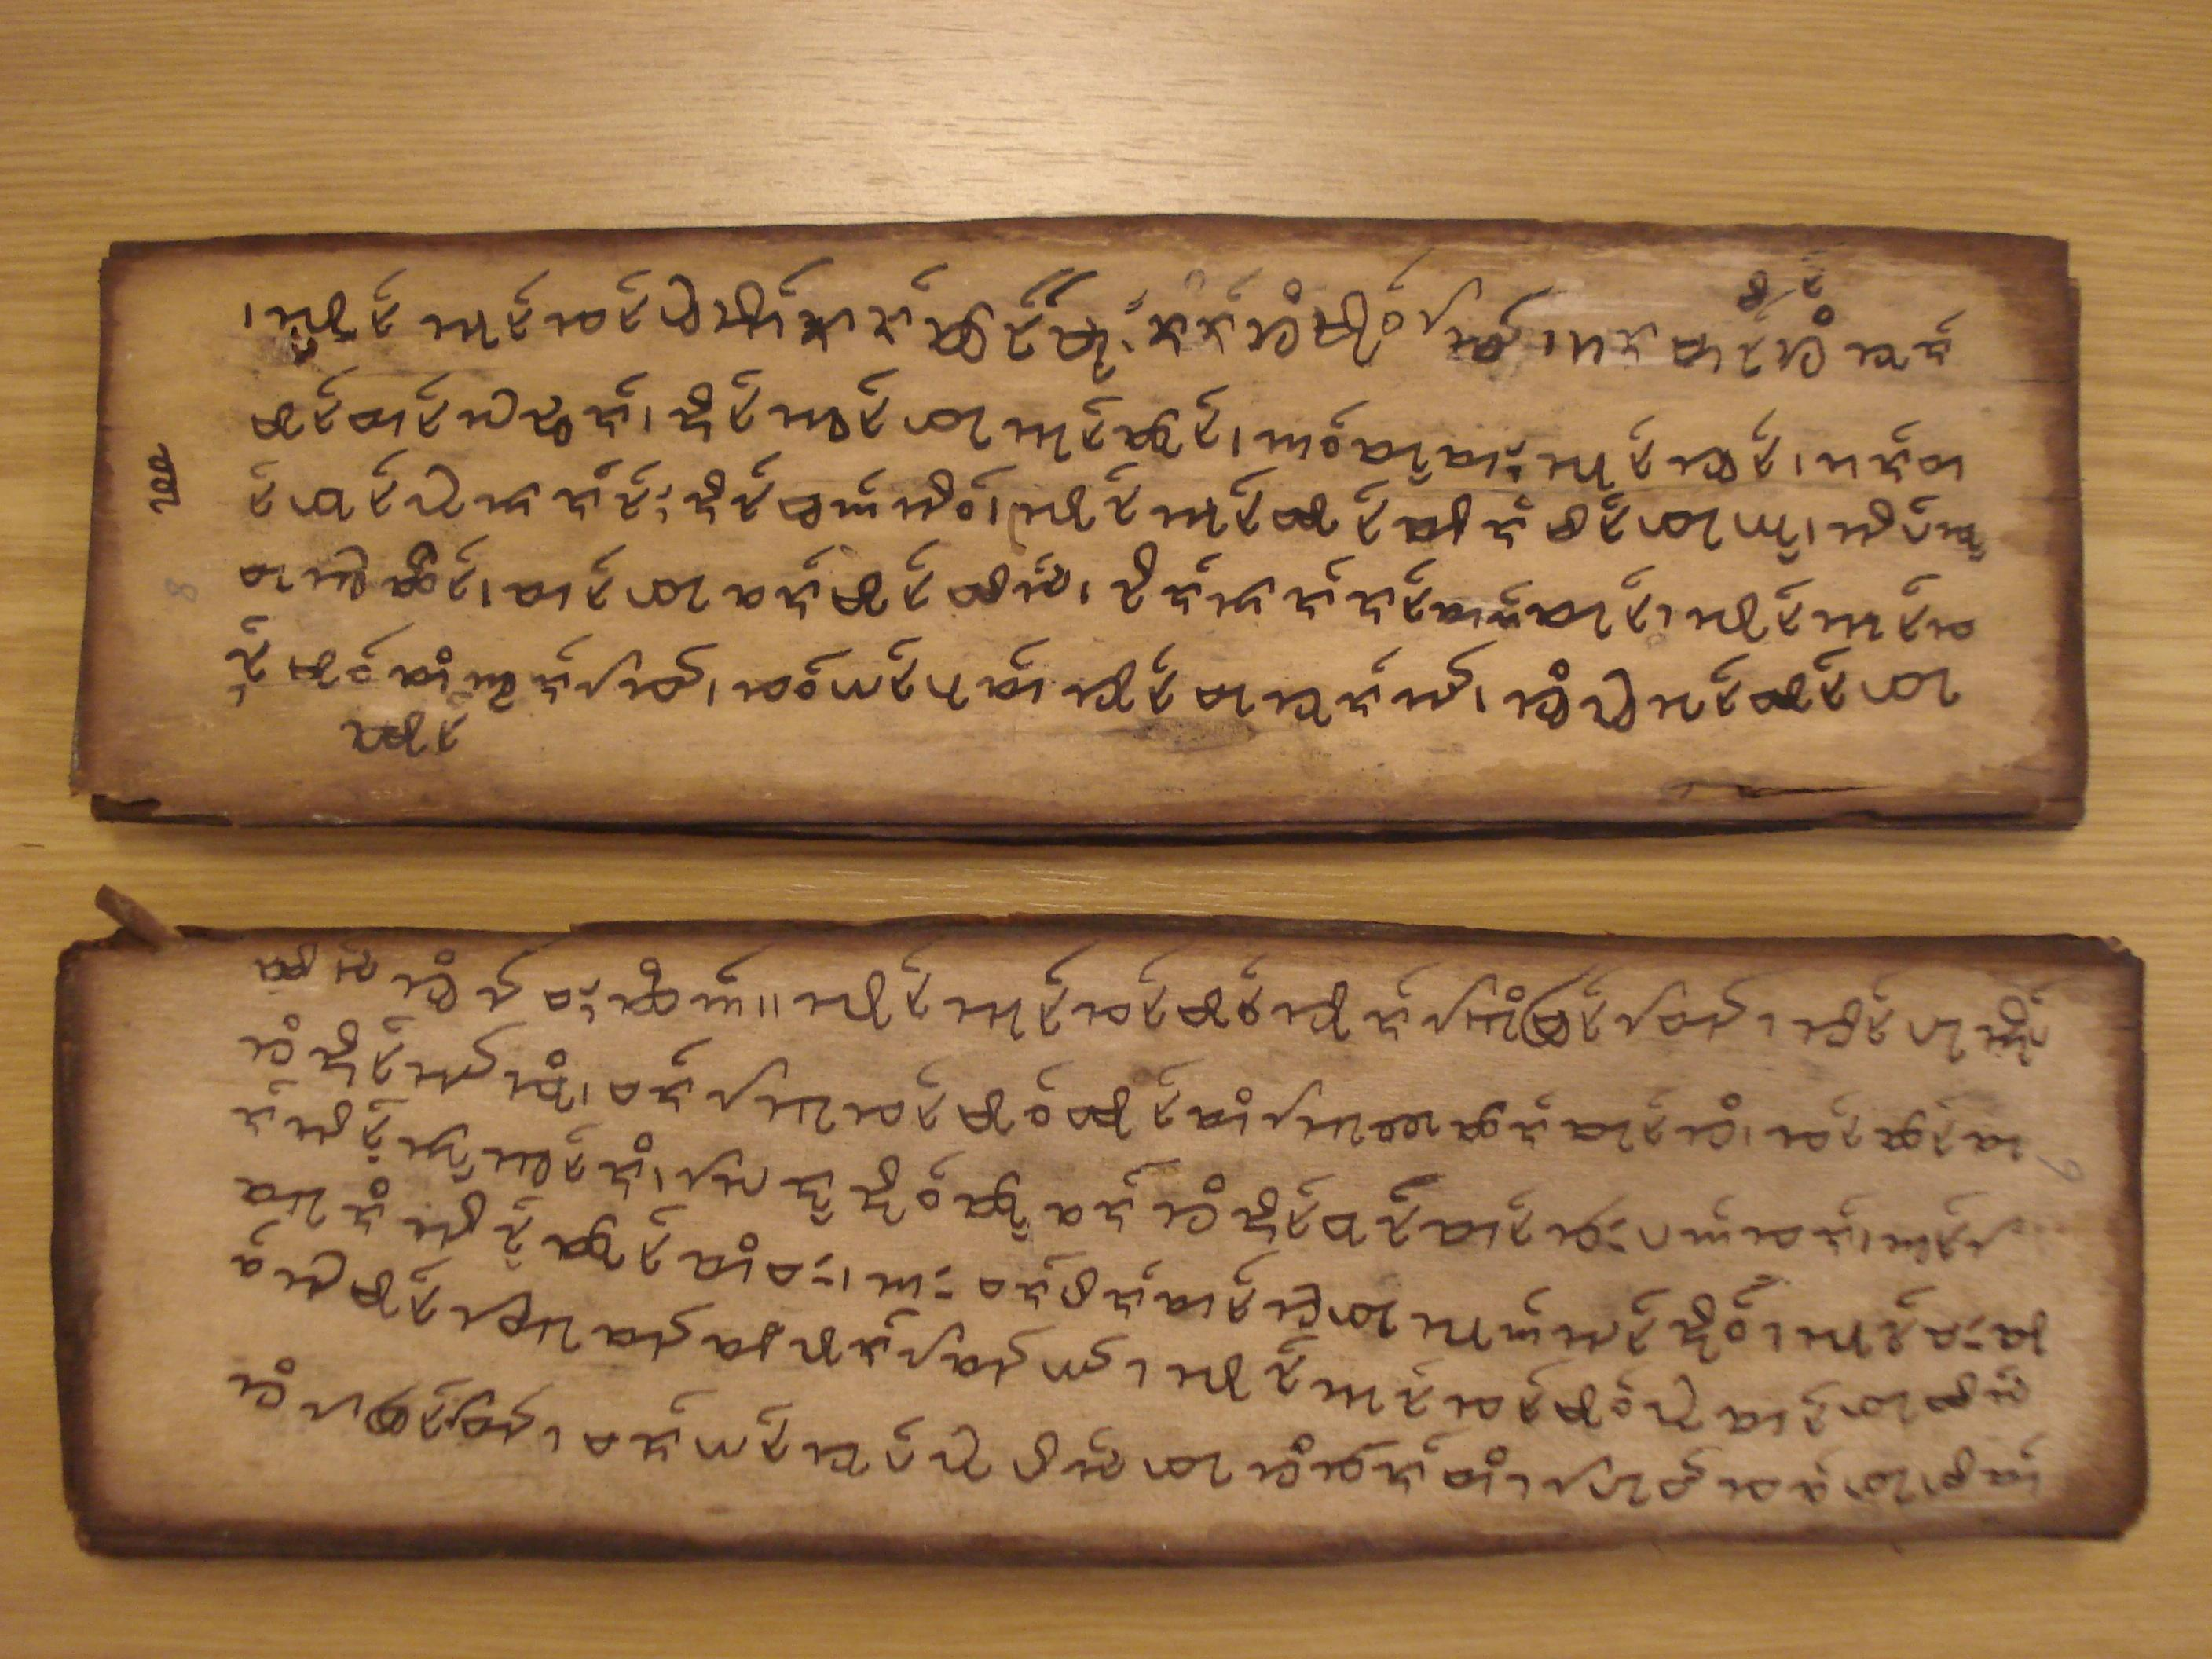 The Chronicle of Ahom manuscript (Buranji )